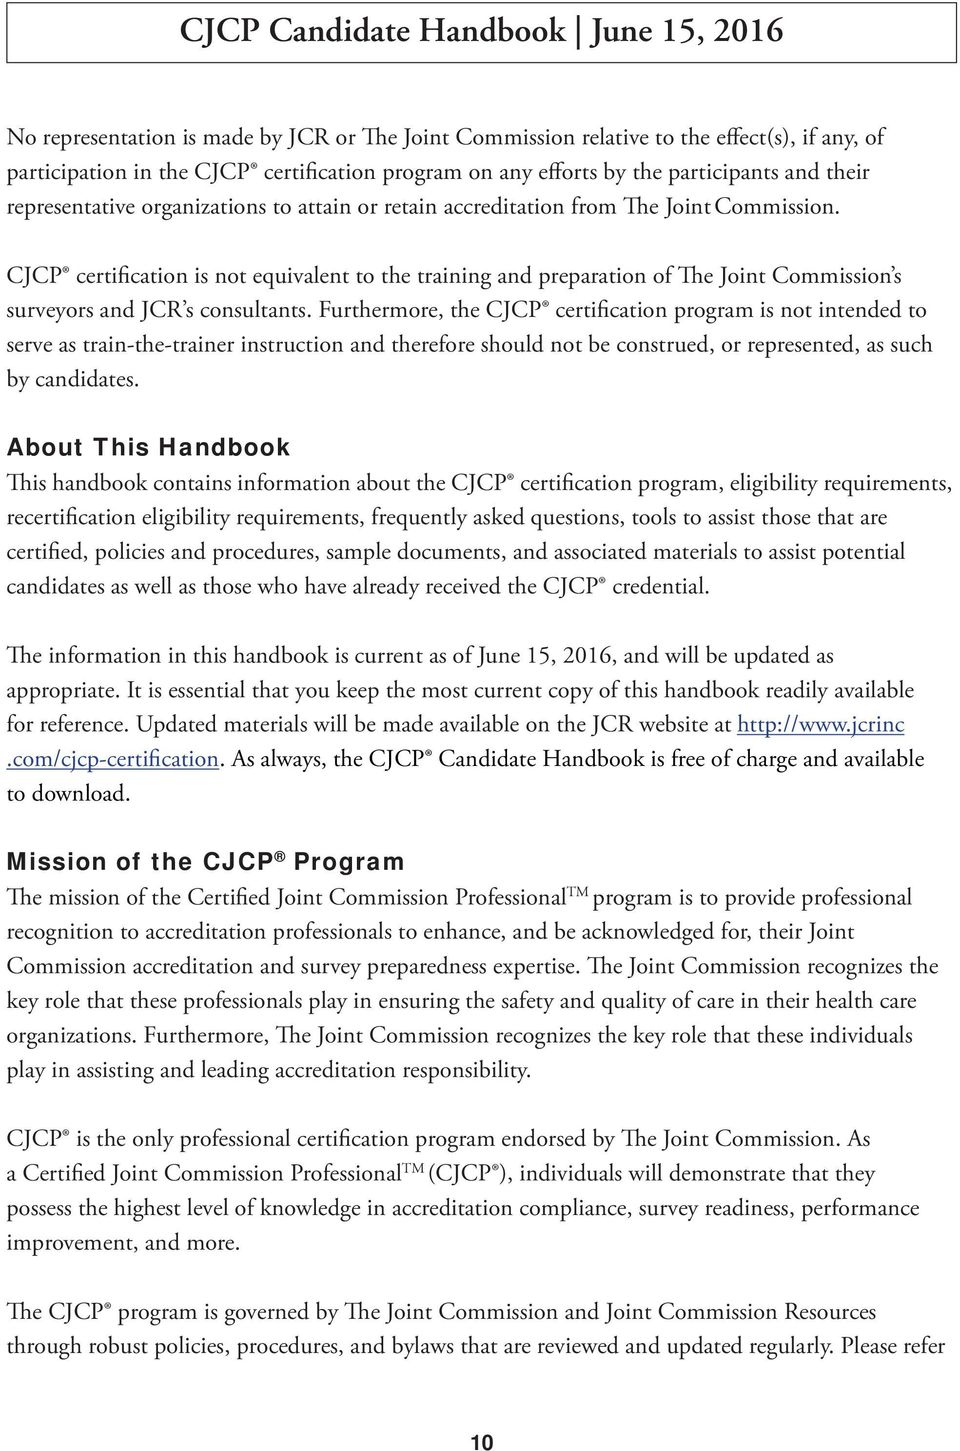 Certified Joint Commission Professional Candidate Handbook